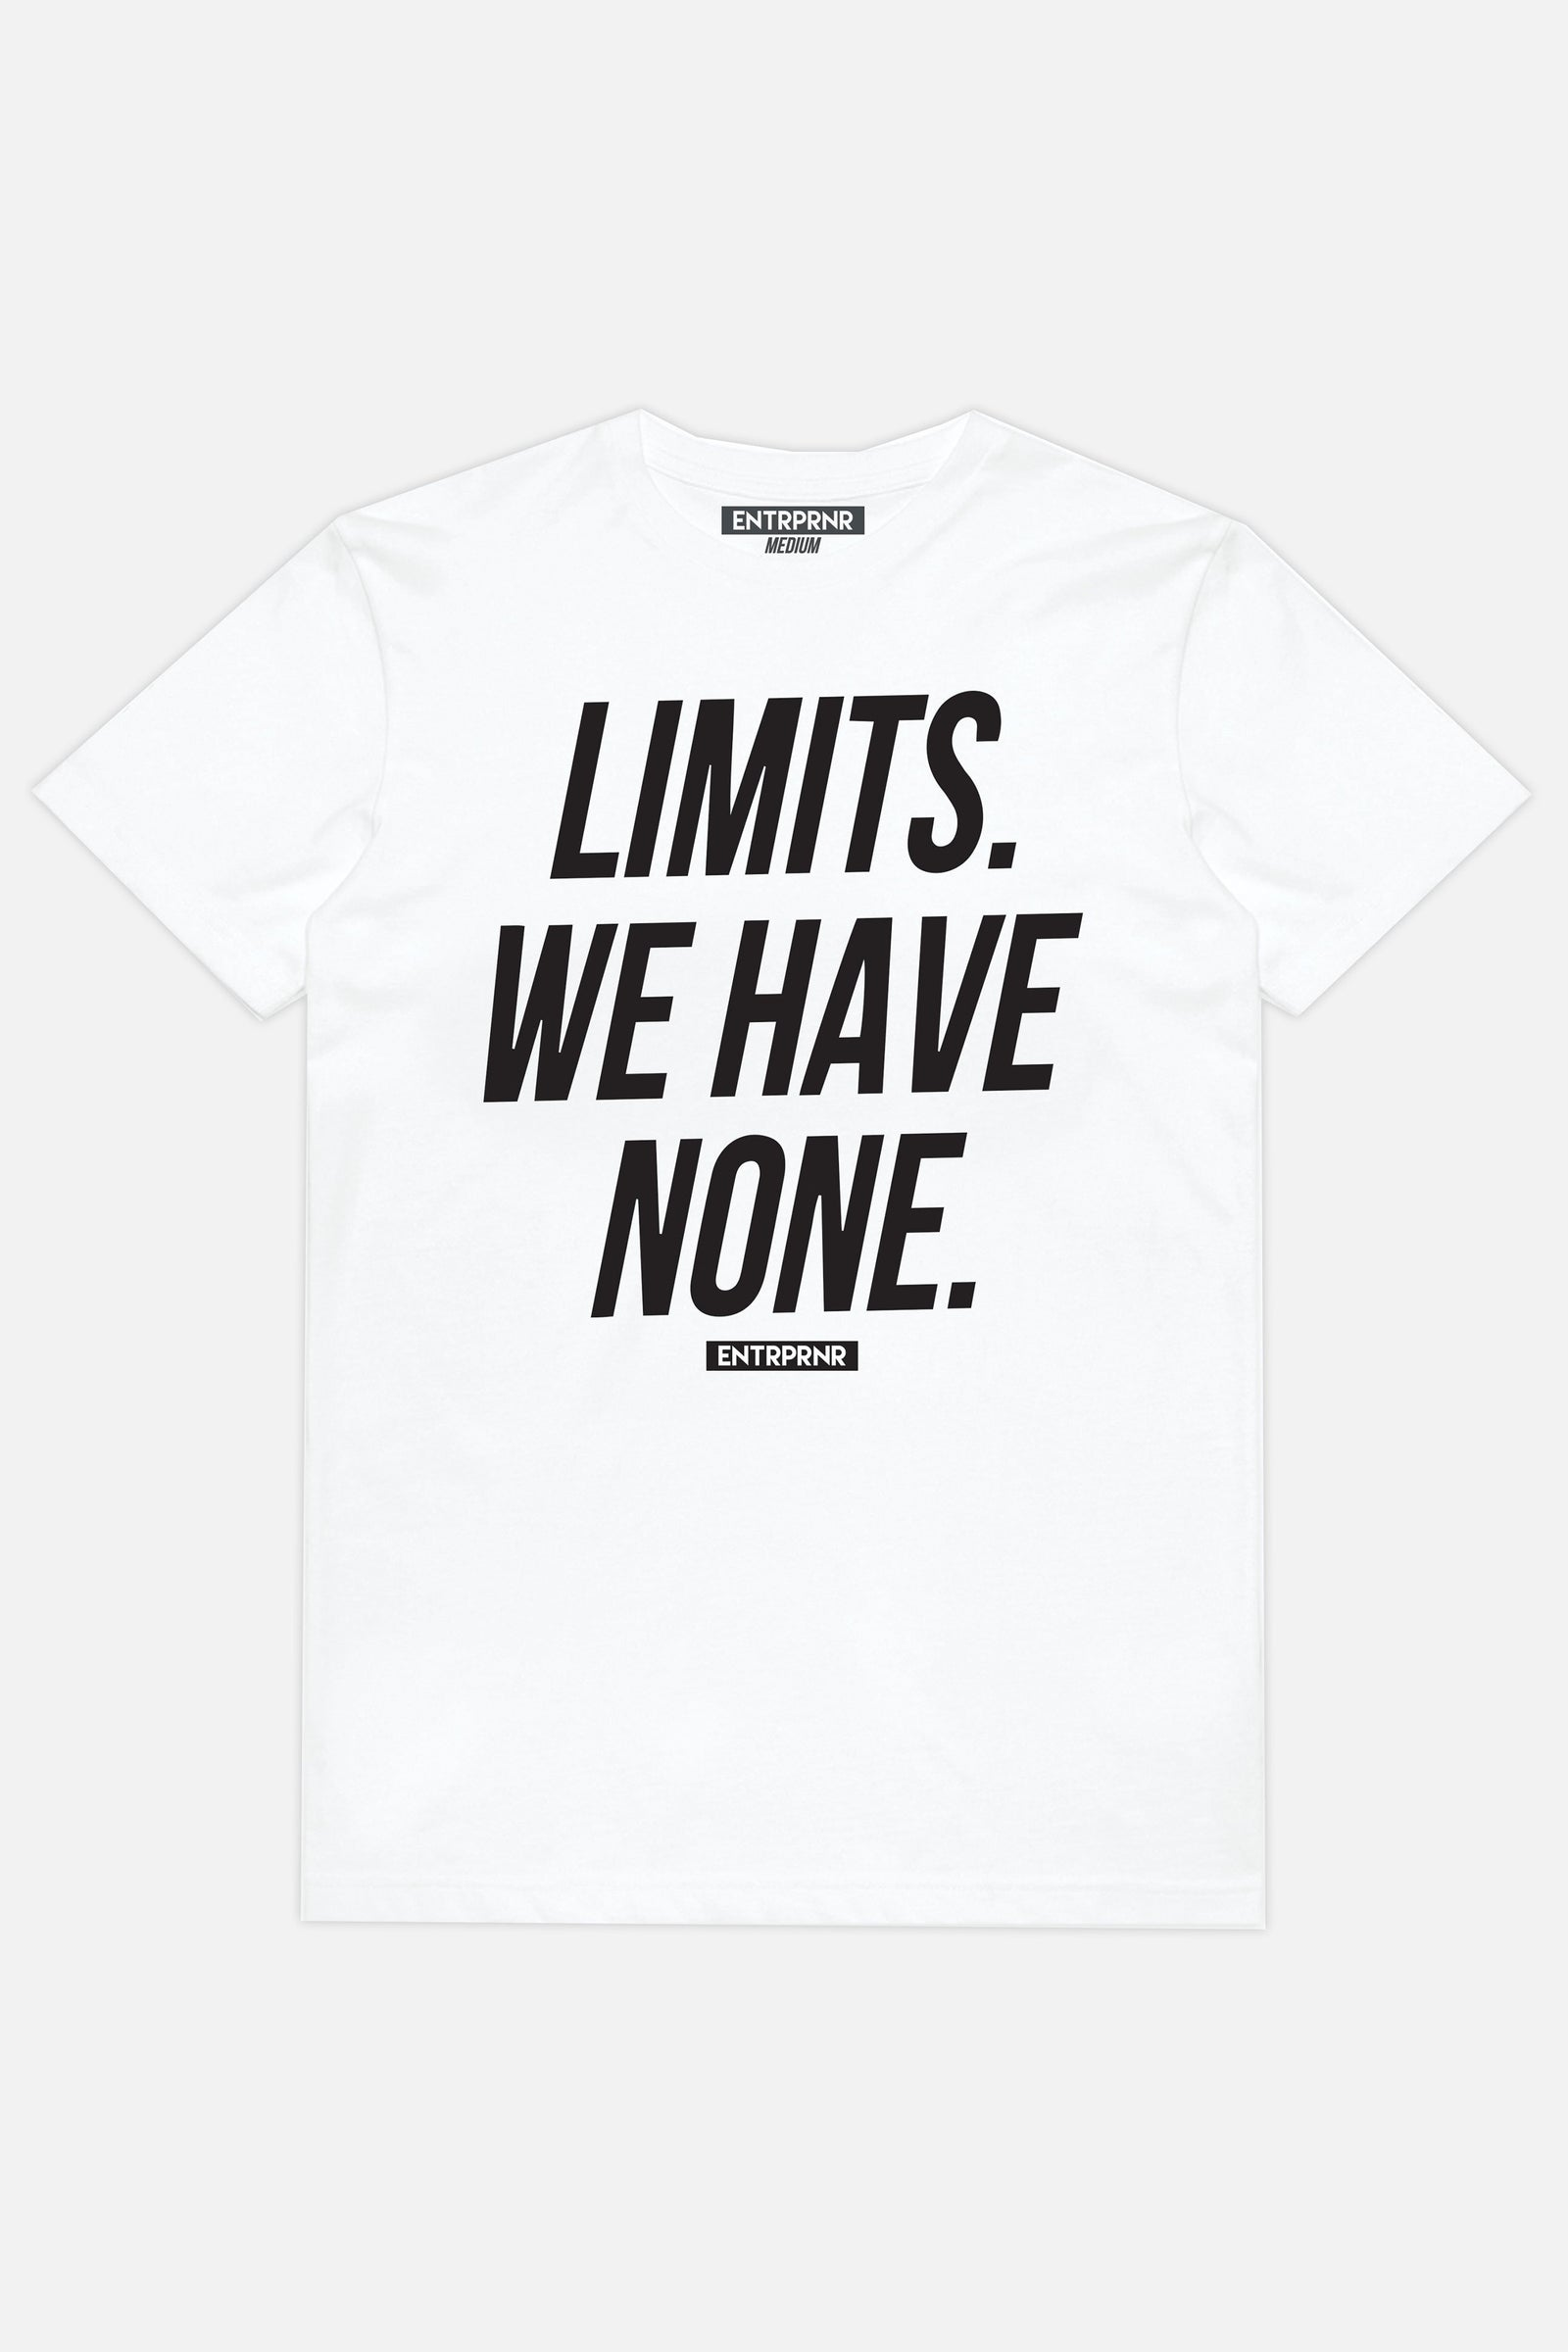 No Limits ENTRPRNR Tee - White - ENTRPRNR® | The Entrepreneur's Clothing Brand. | Stagnancy is the Enemy. Action is King.